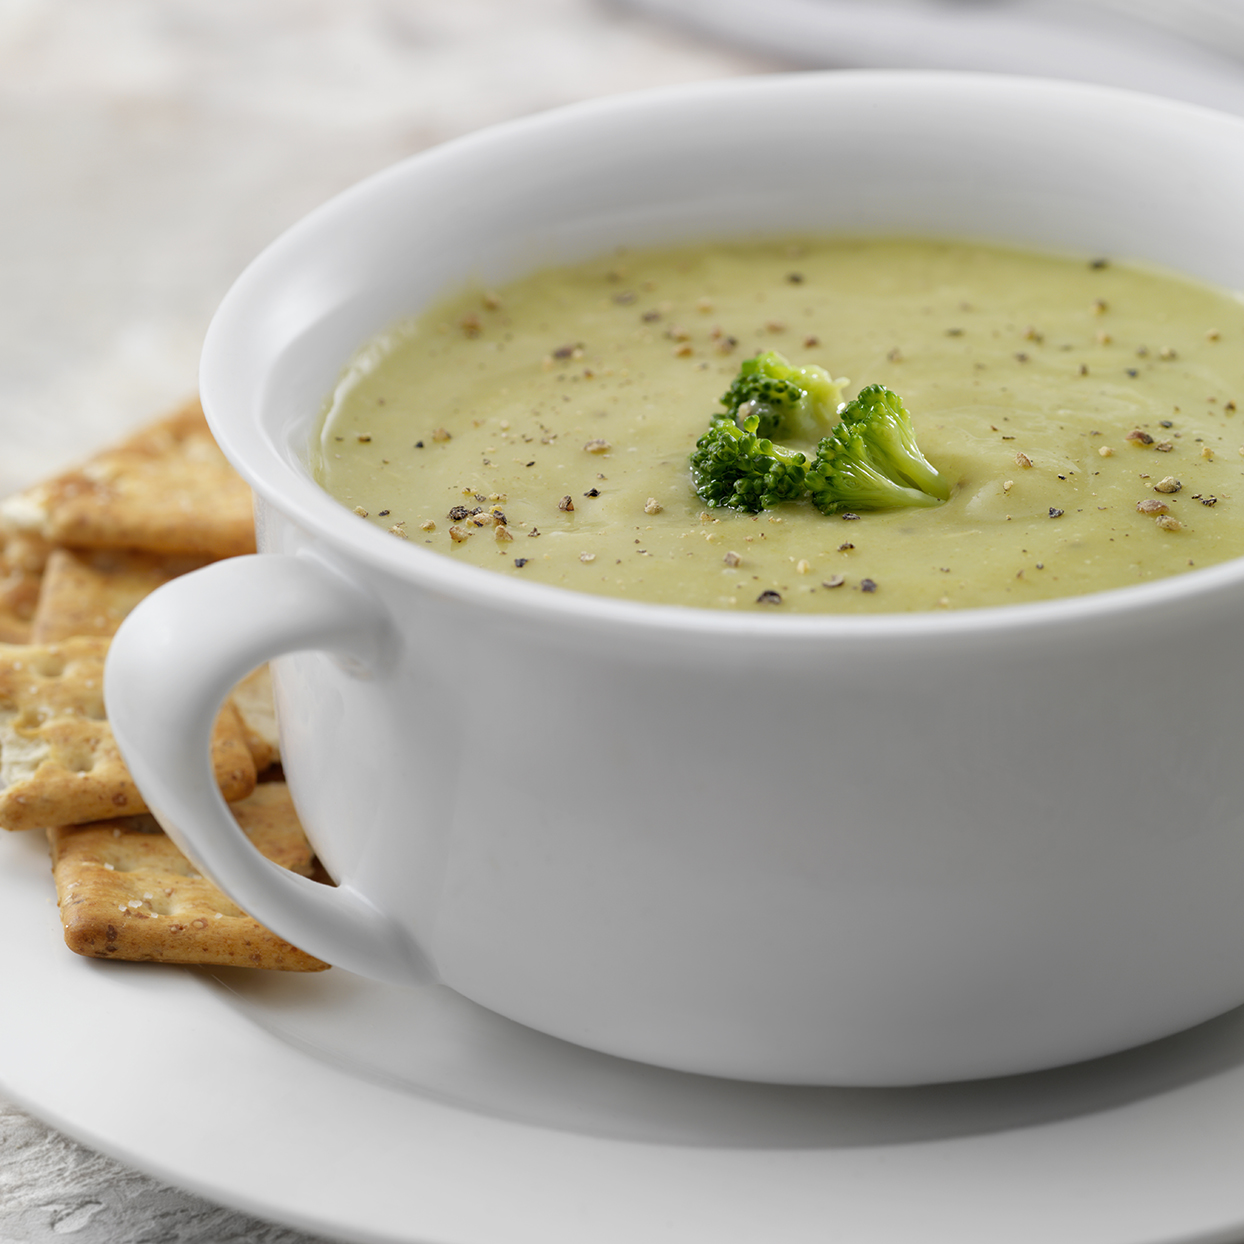 It has broccoli in it, how calorically-dense can it be? Depending on how its prepared, one cup of cream of broccoli soup could set you back almost 500 calories. To lighten it up, make your own soup at home, or try any of these filling, diet-friendly soup recipes instead.